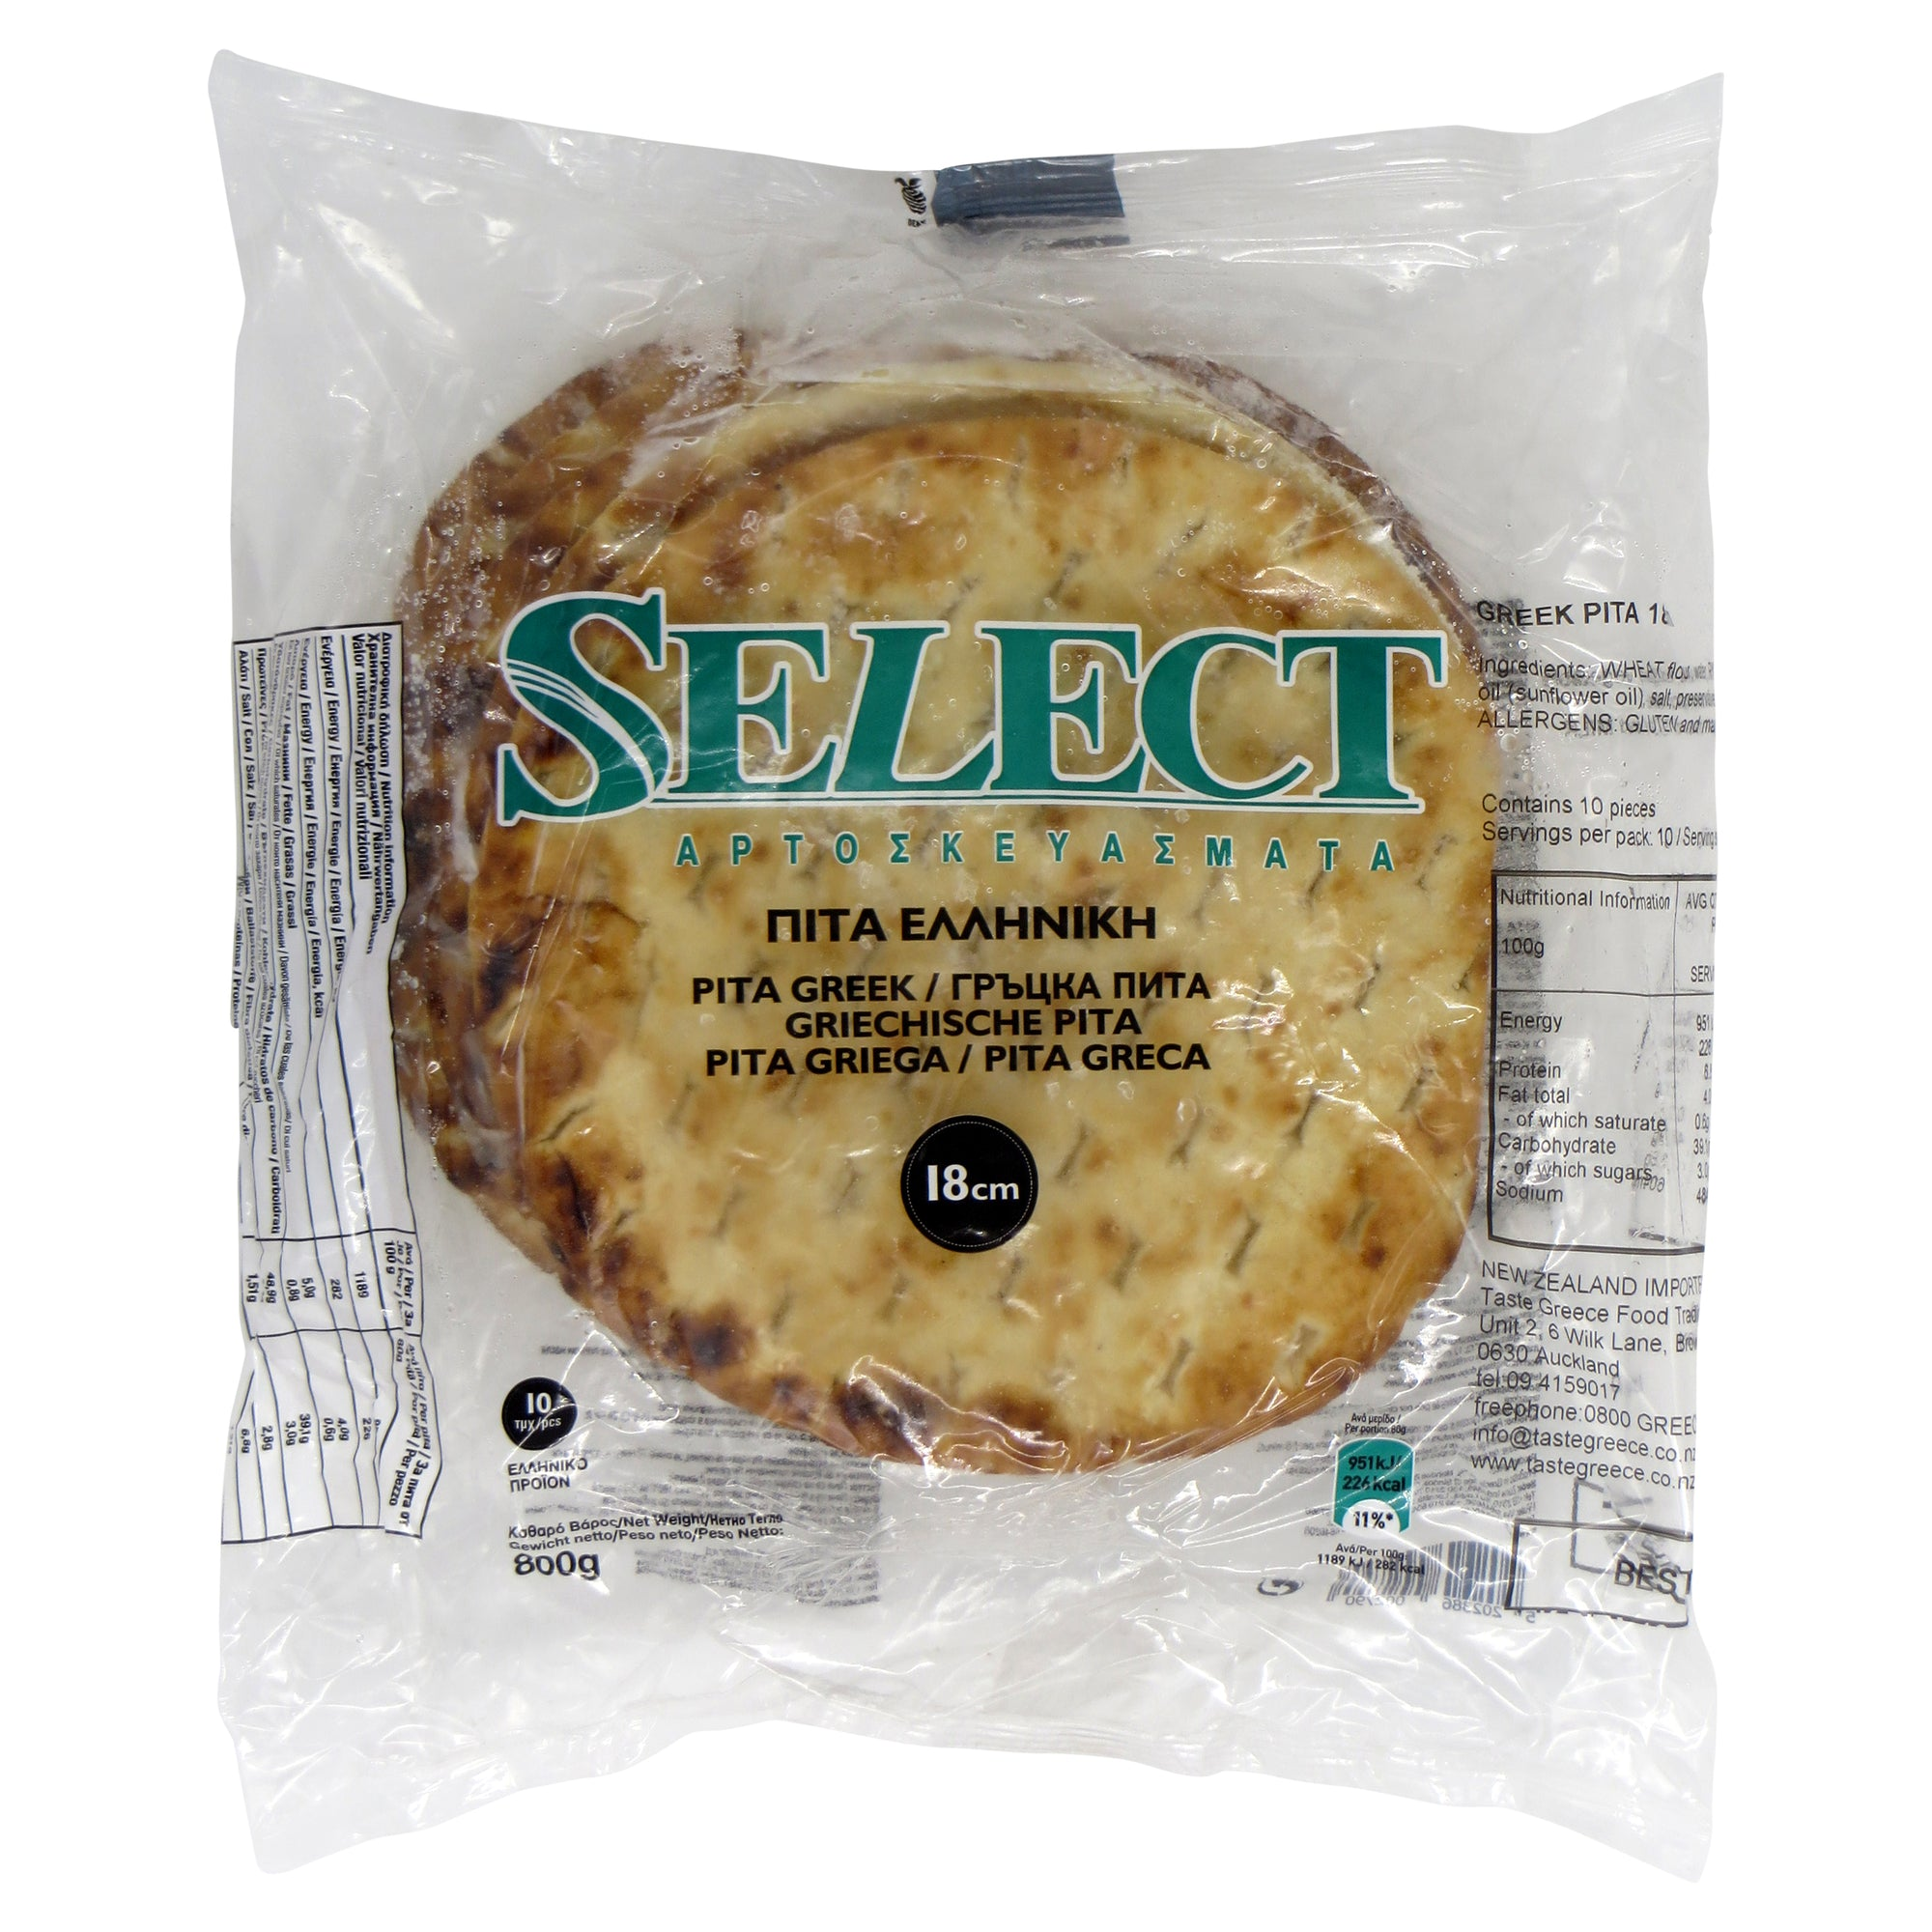 Greek pita 18cm - 10pack